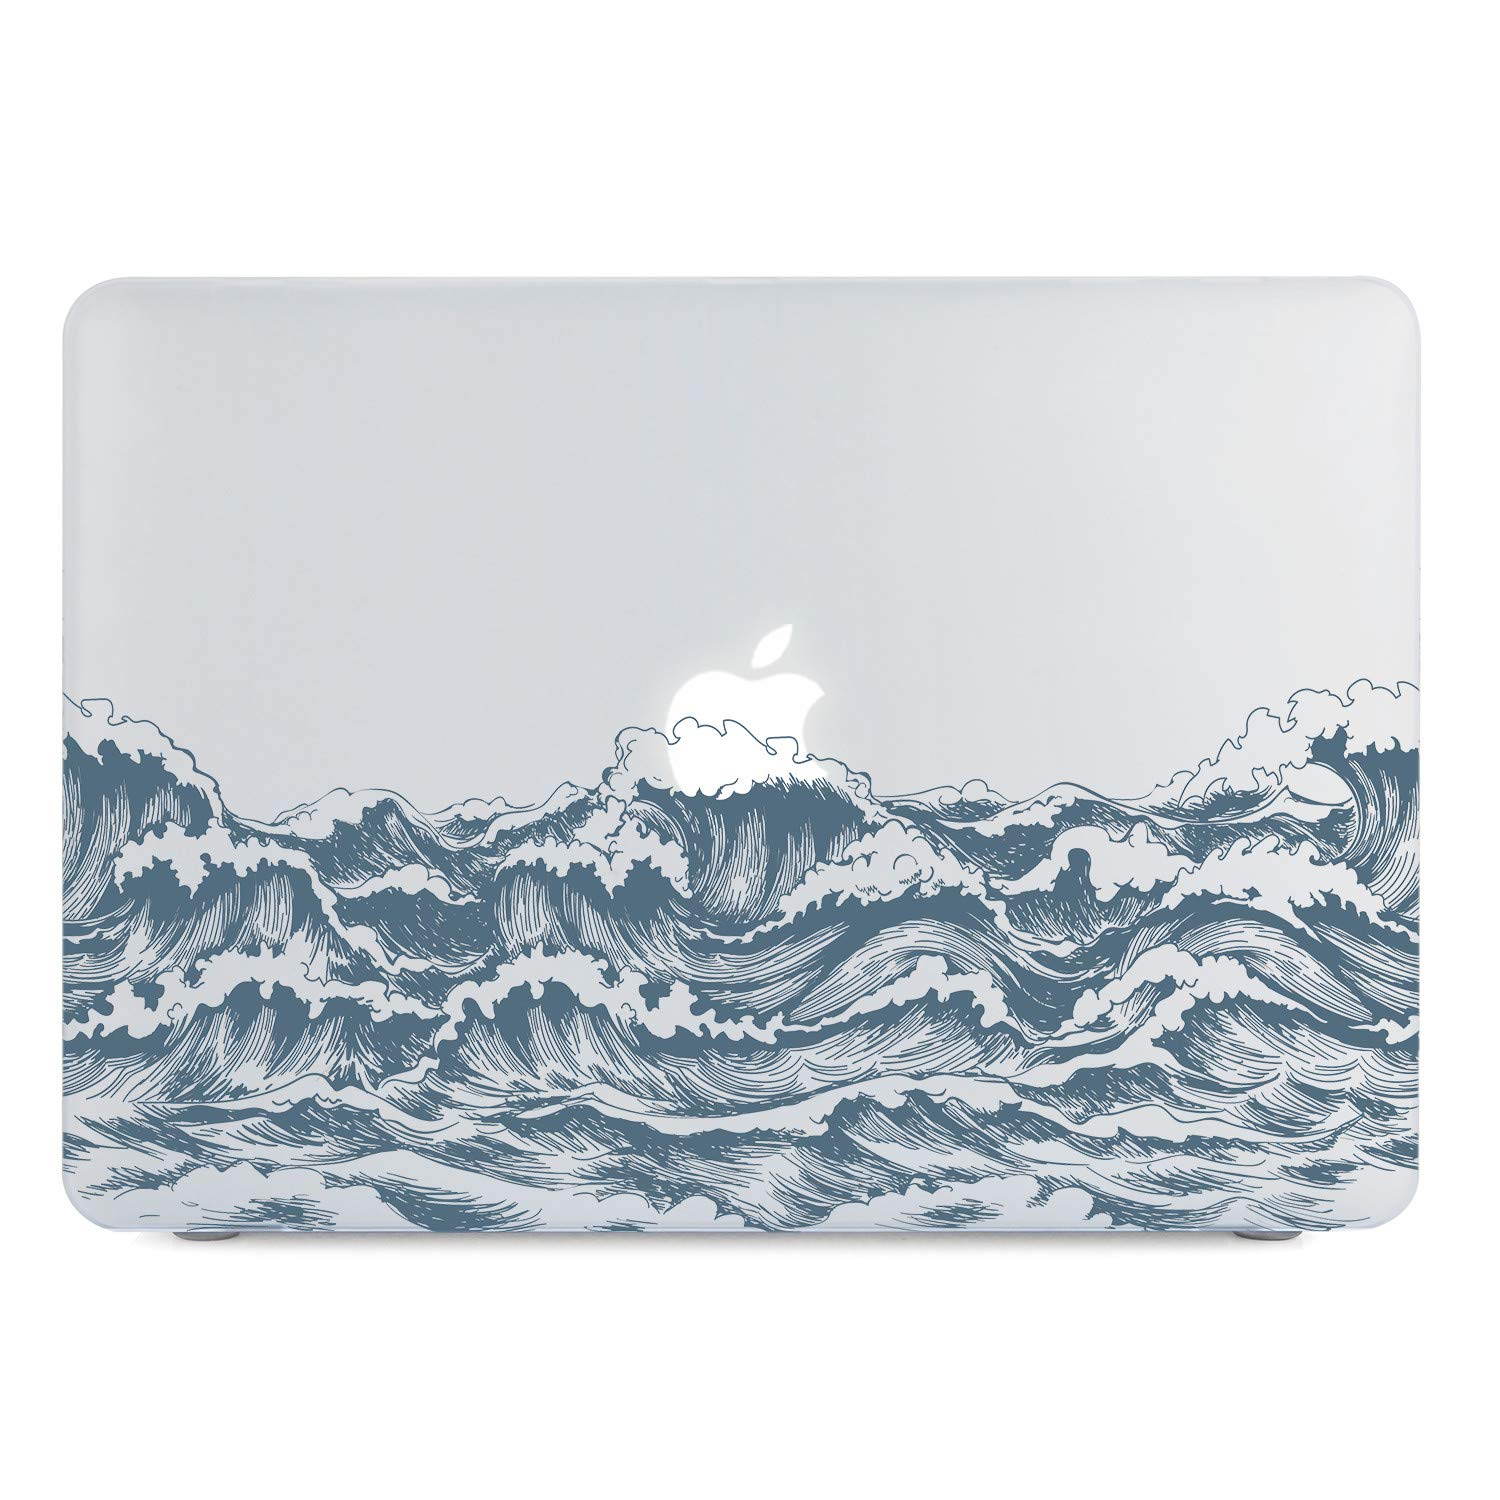 Lapac MacBook Air 13 Inch Clear Case 2019 2018 Release A1932, Soft Touch Hard Shell Case & Retina Display Fits Touch ID with Keyboard Cover (Sea ...